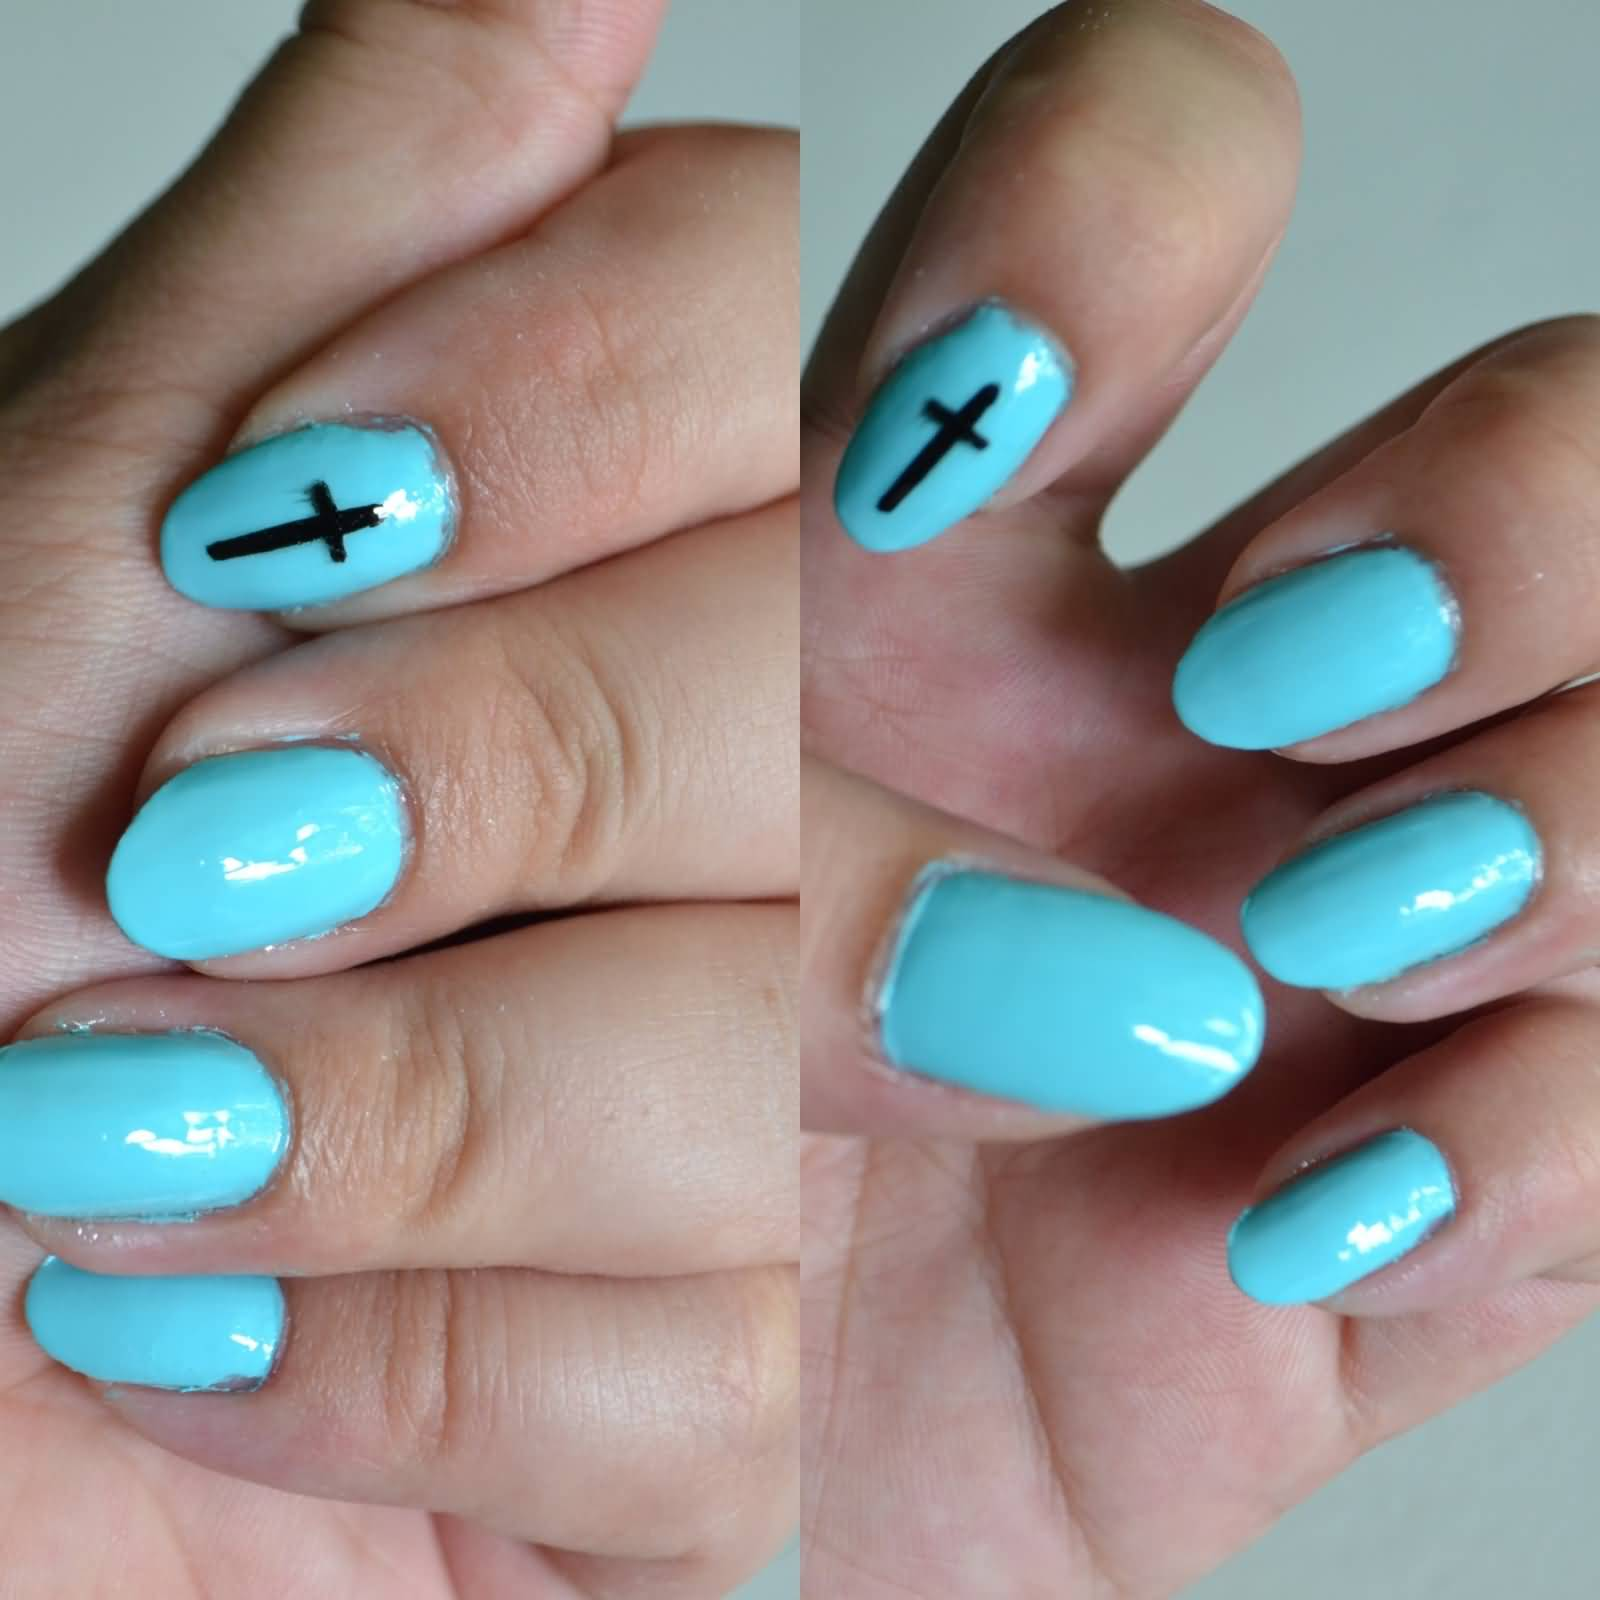 Almond Shaped Blue Acrylic Nail Art With Black Cross Sign